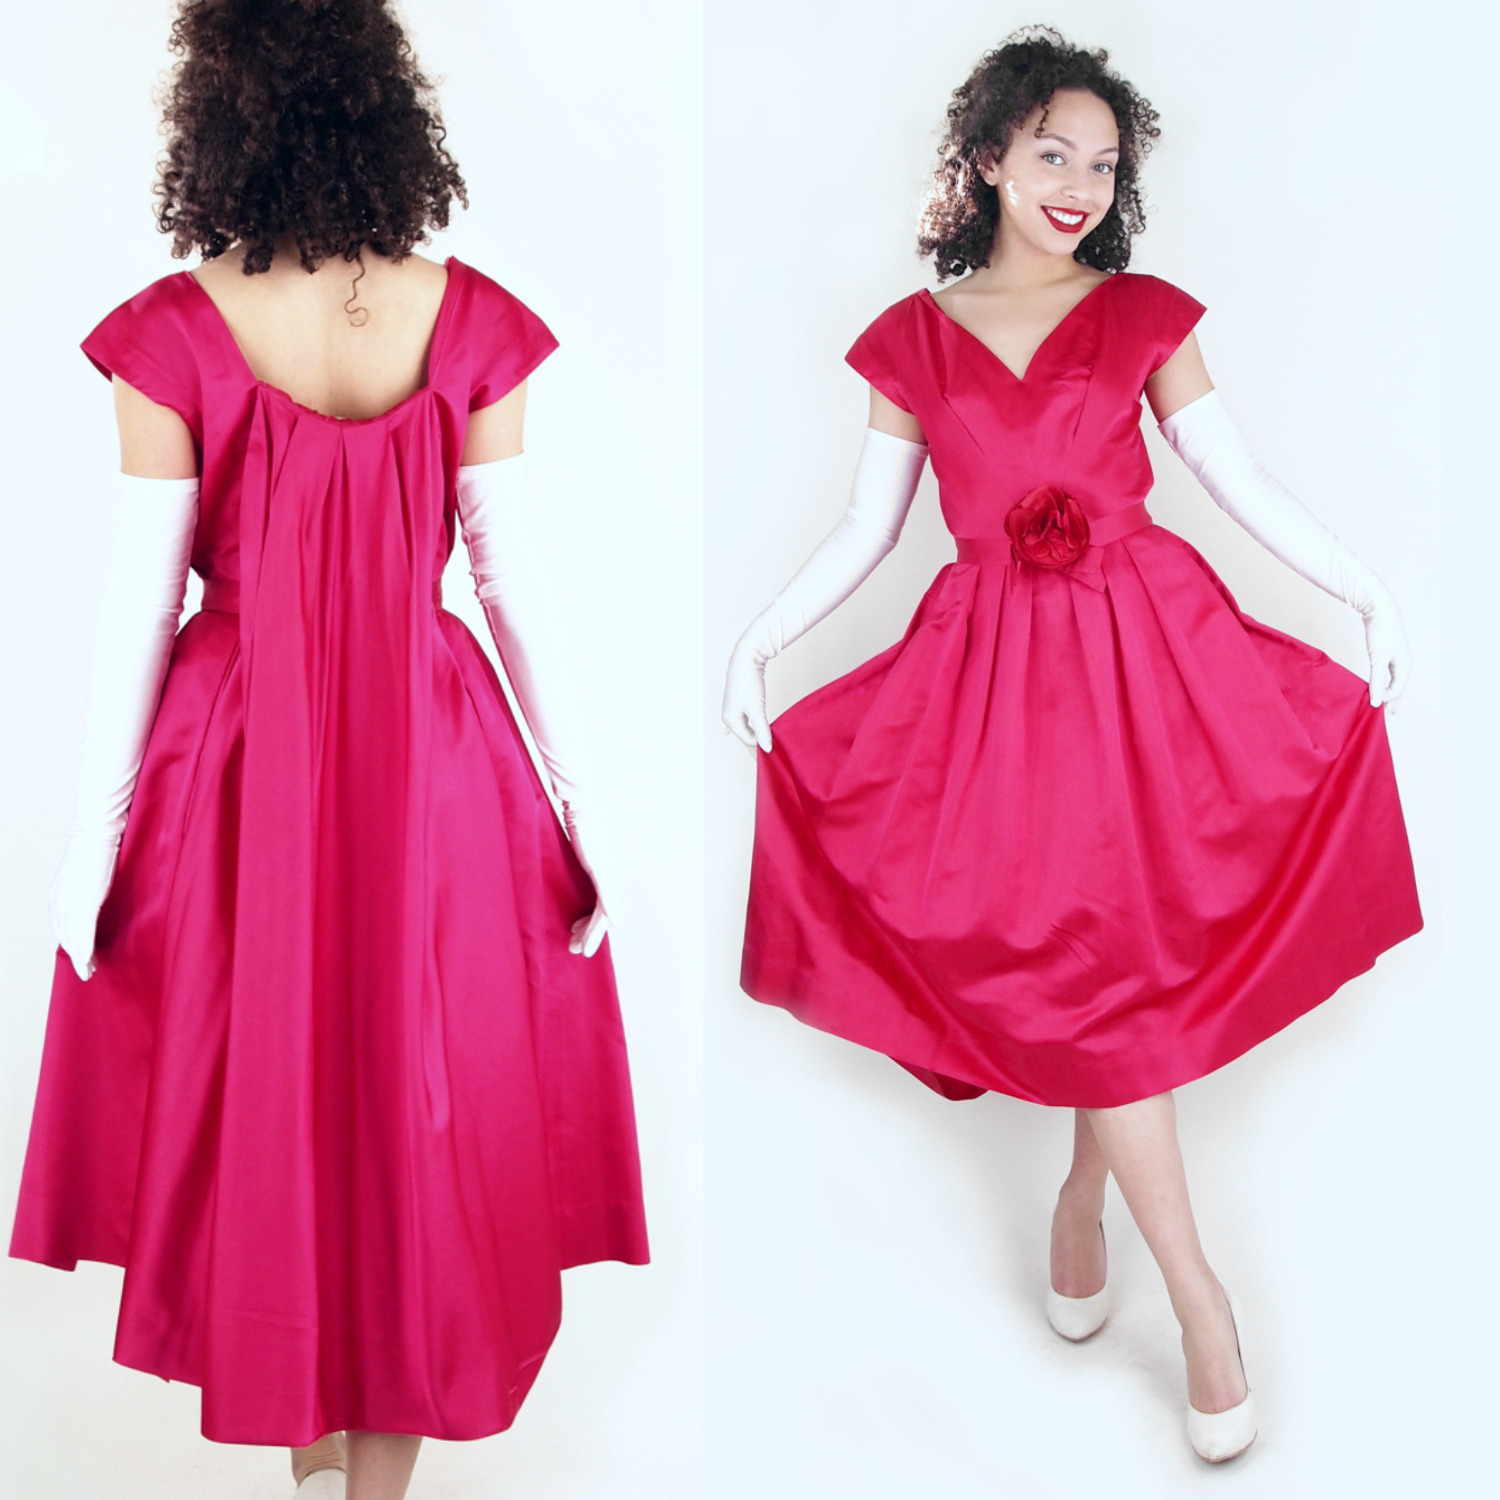 This gorgeous pour of magenta silk satin was created by Carlye in the late 1950s